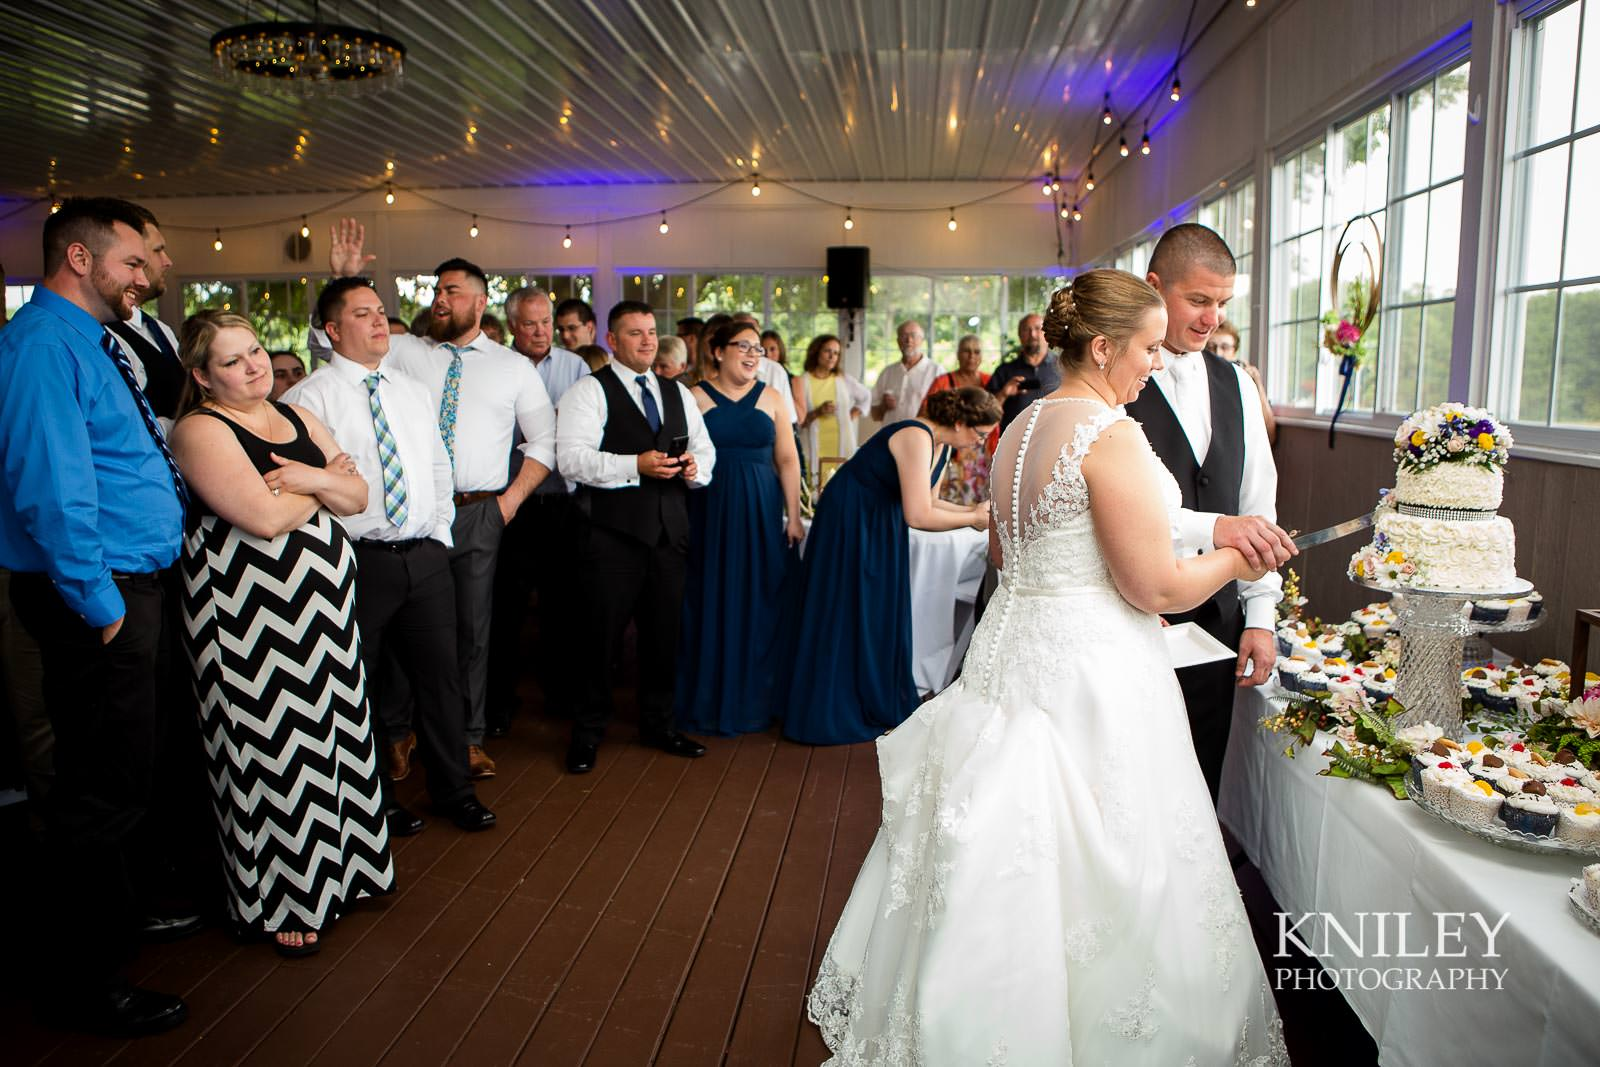 43-Jerris-Wadsworth-Wedding-Barn-Rochester-NY-Wedding-Photography.jpg